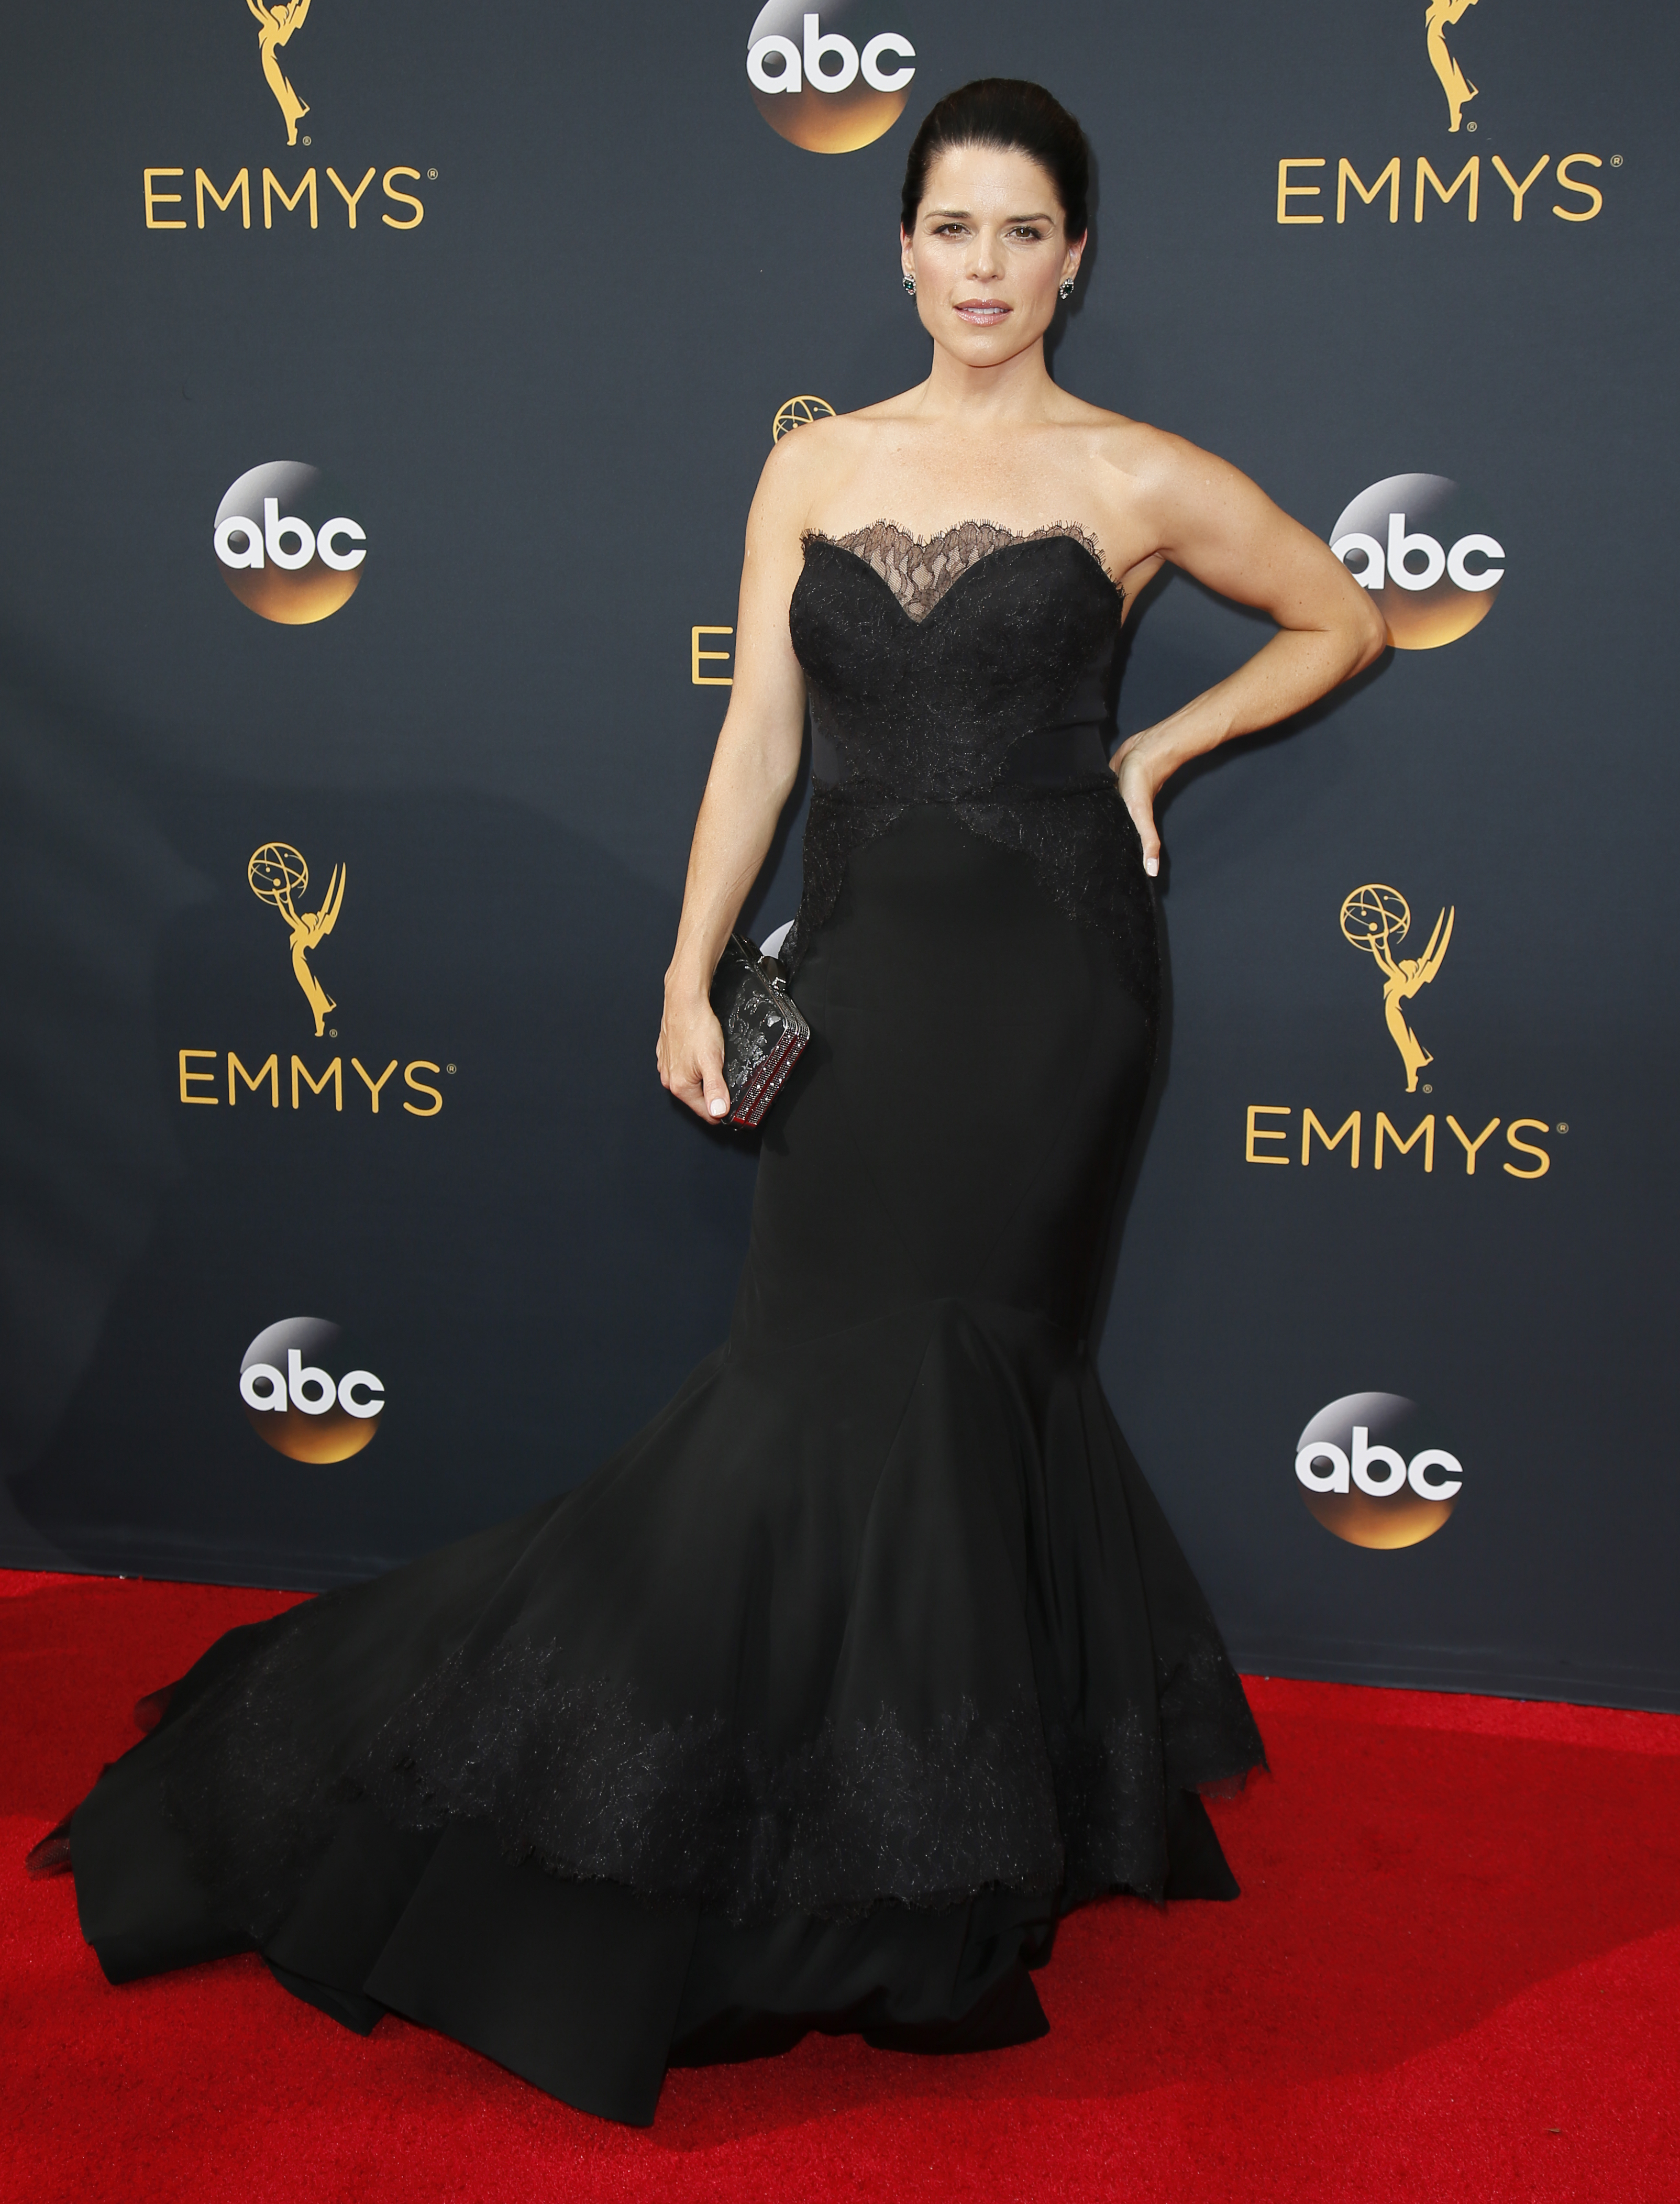 Neve Campbell arrives at the 68th Primetime Emmy Awards on Sunday, Sept. 18, 2016, at the Microsoft Theater in Los Angeles. (Photo by Danny Moloshok/Invision for the Television Academy/AP Images)